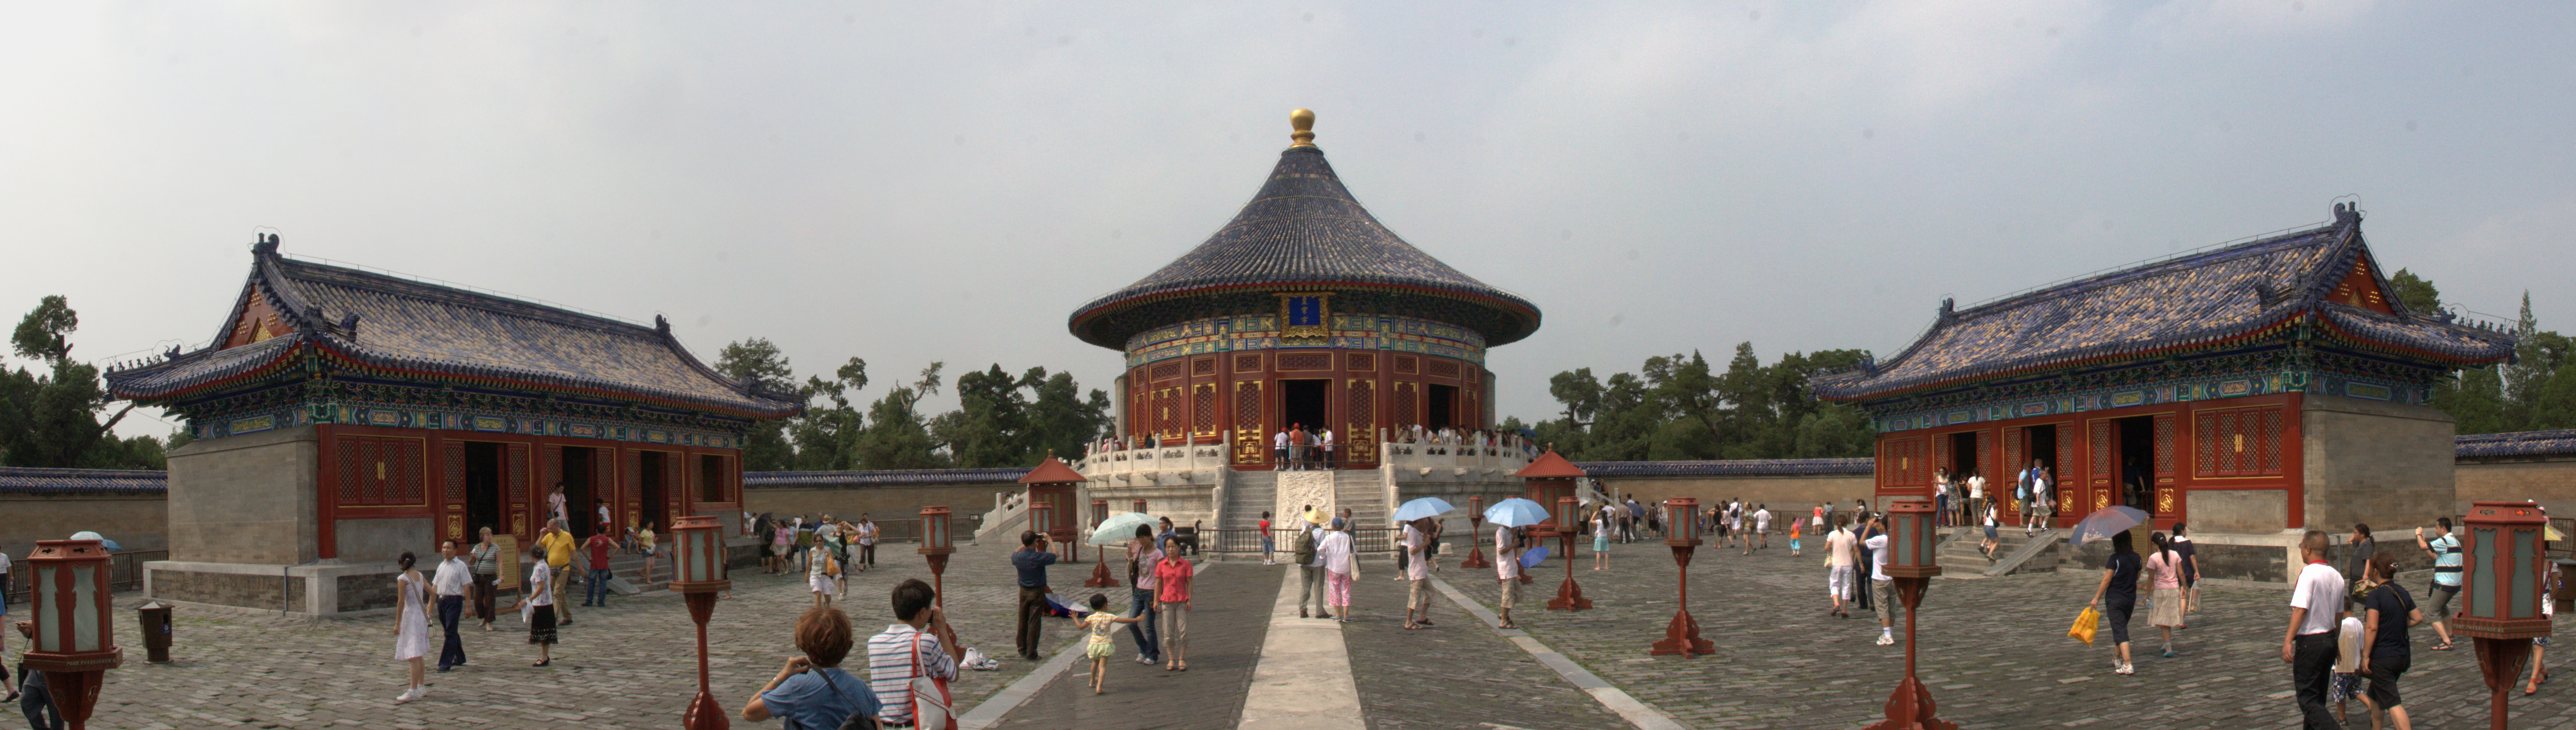 Panorama from the opposite view of the Imperial Vault of Heaven.